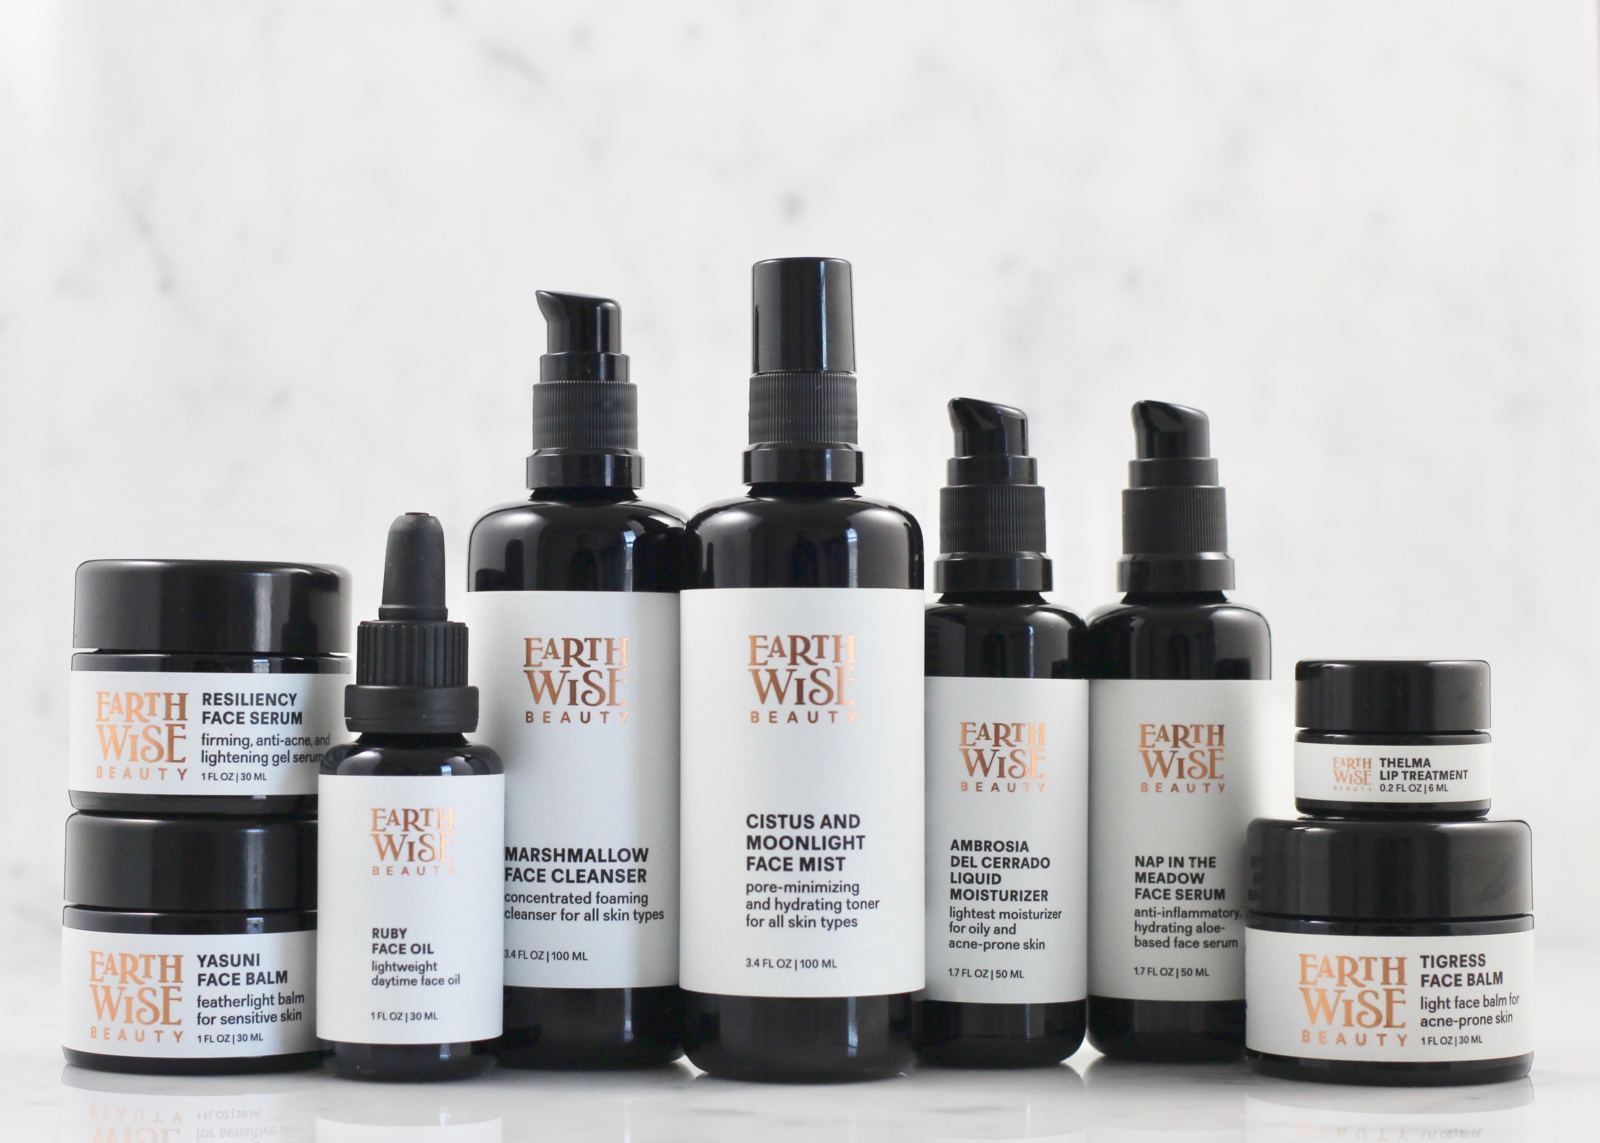 Updated Brand Review: Earthwise Beauty